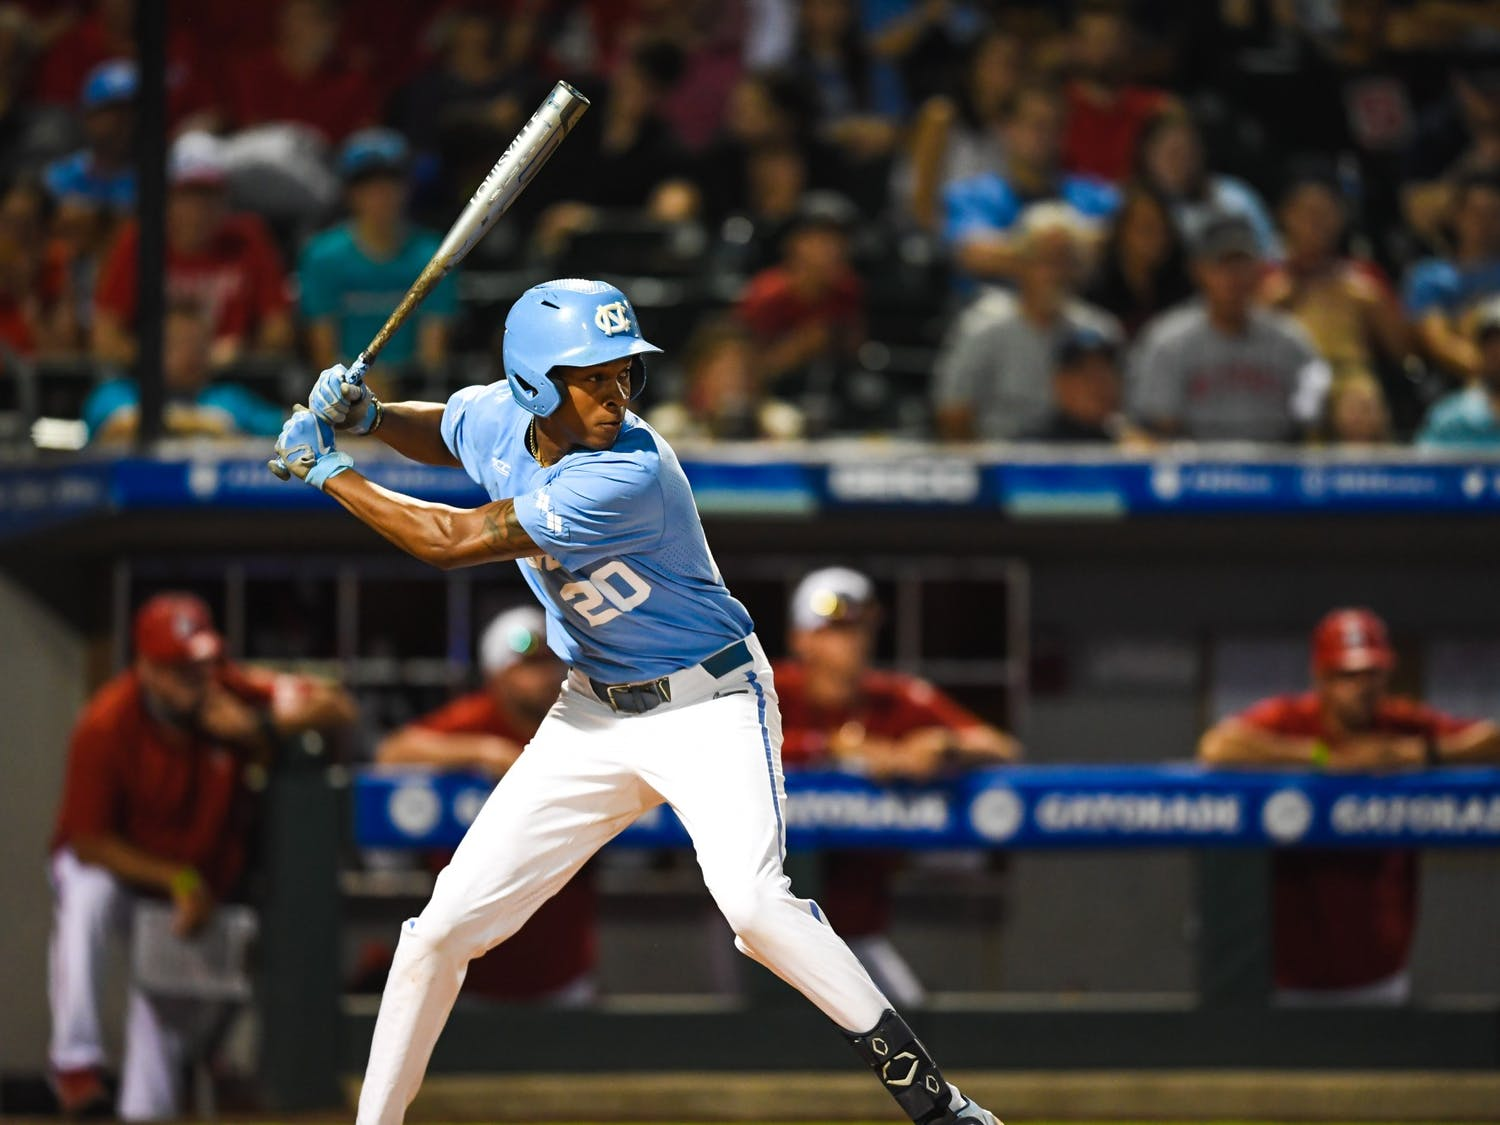 UNC sophomore outfielder Justice Thompson (20) bats at the ACC tournament game against NC State on Friday May 28, 2021 in Charlotte, NC. UNC won 9-6. Photo courtesy of Maggie Boulton and Laura Wolff.